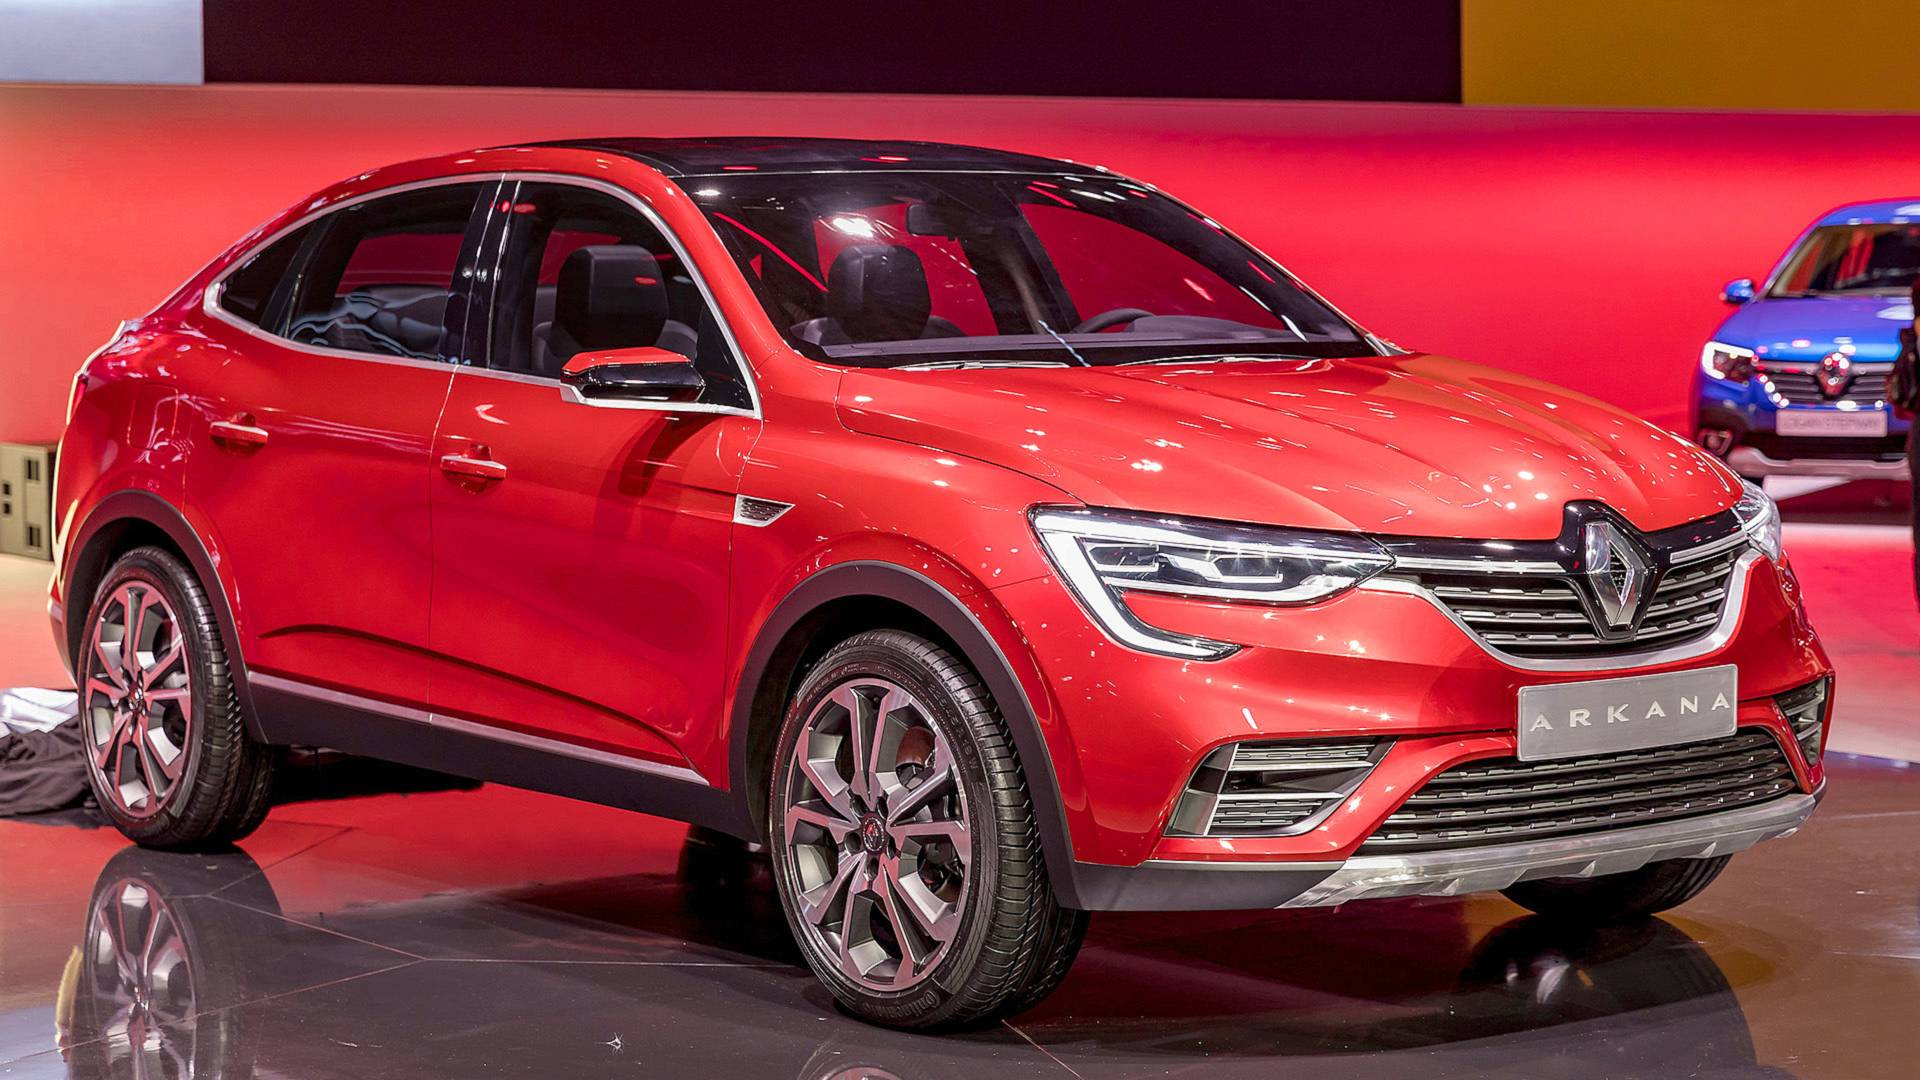 Renault Arkana Revealed at 2018 Moscow International Motor Show 9